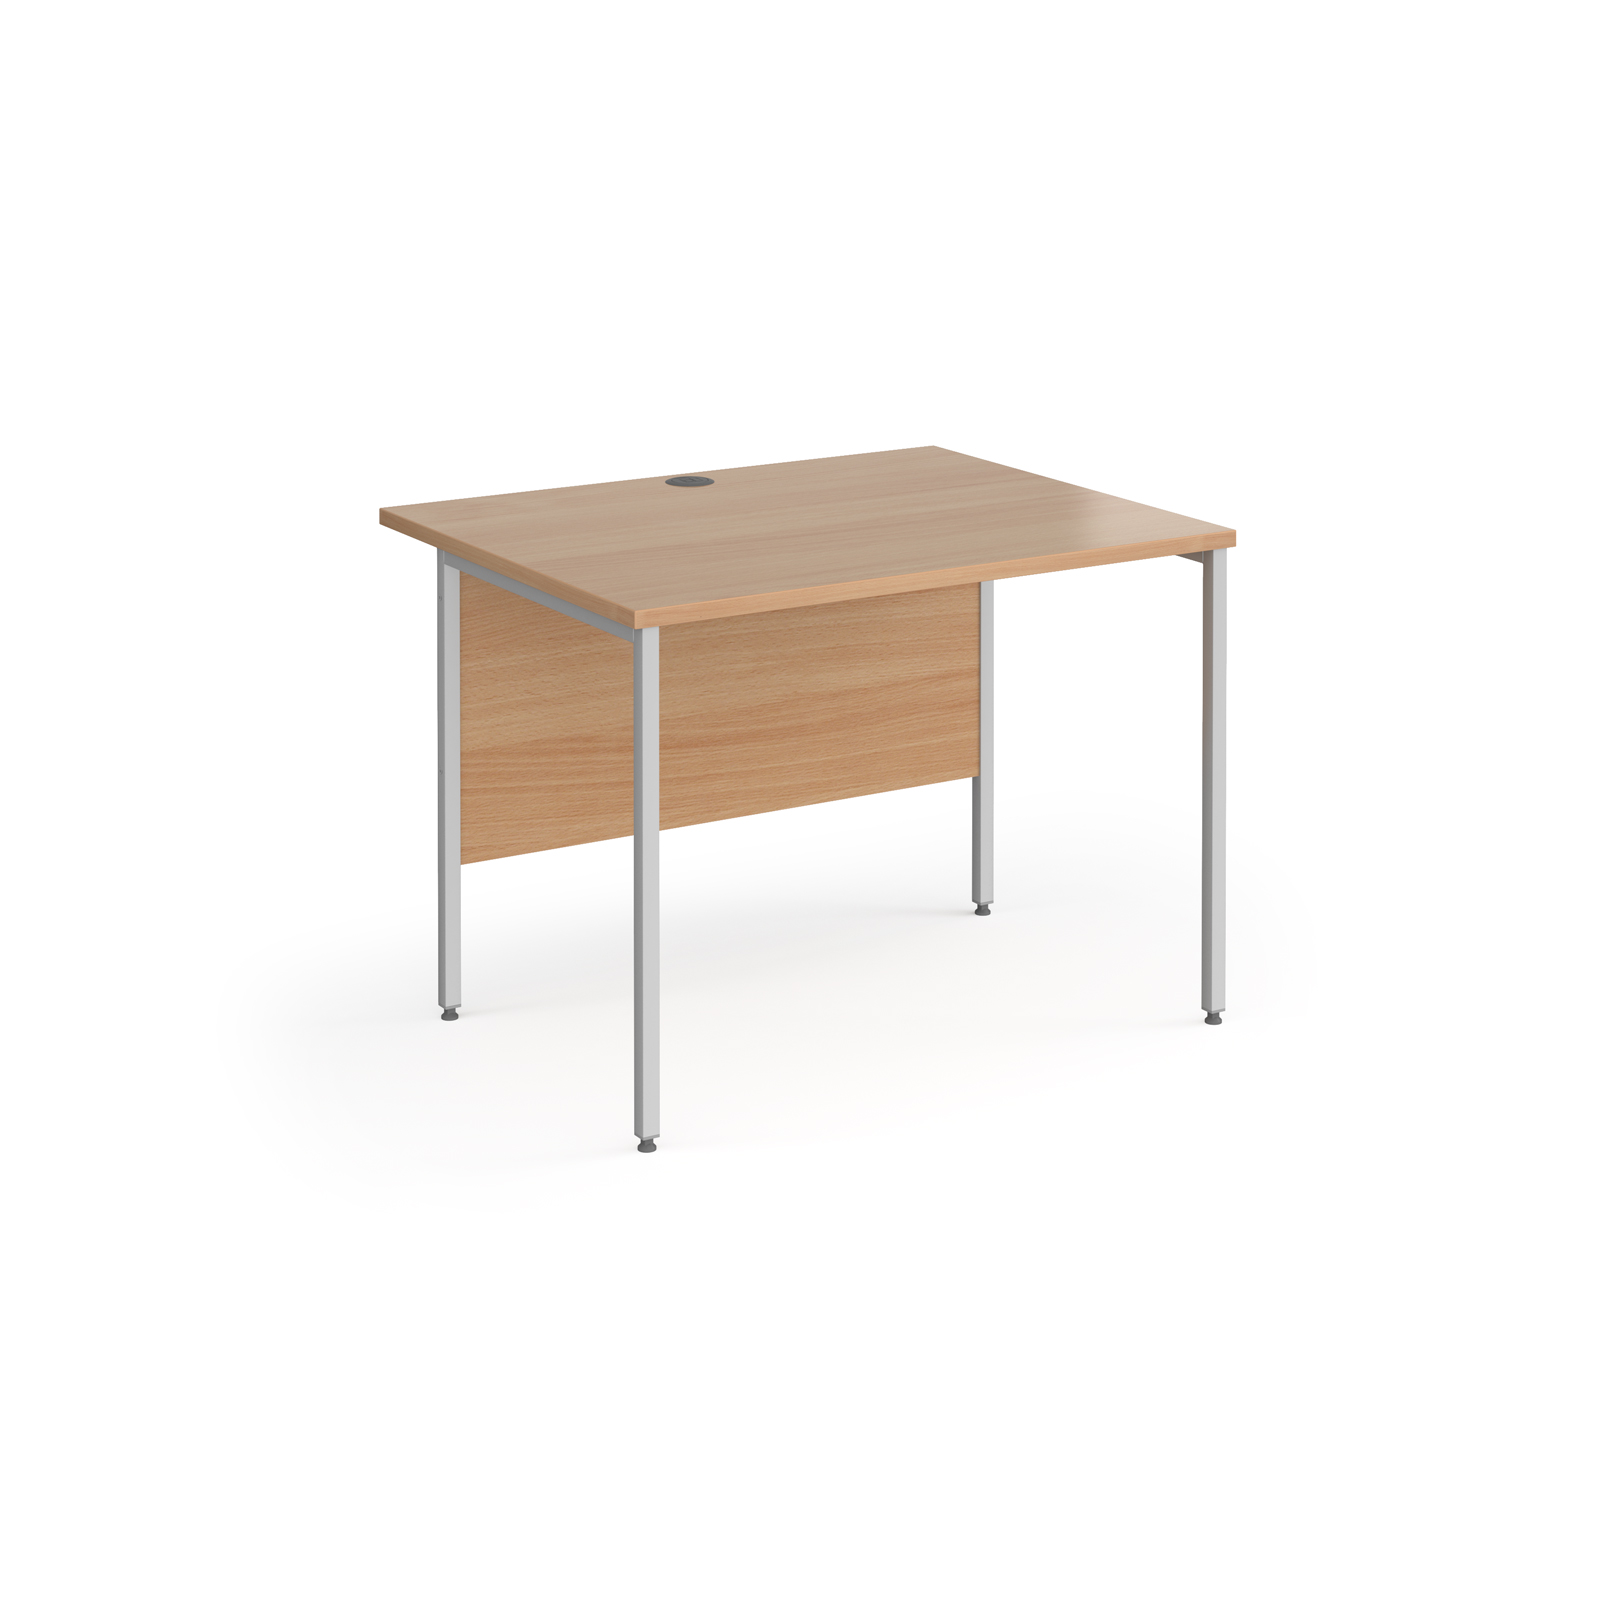 Contract 25 straight desk with silver H-Frame leg 1000mm x 800mm - beech top